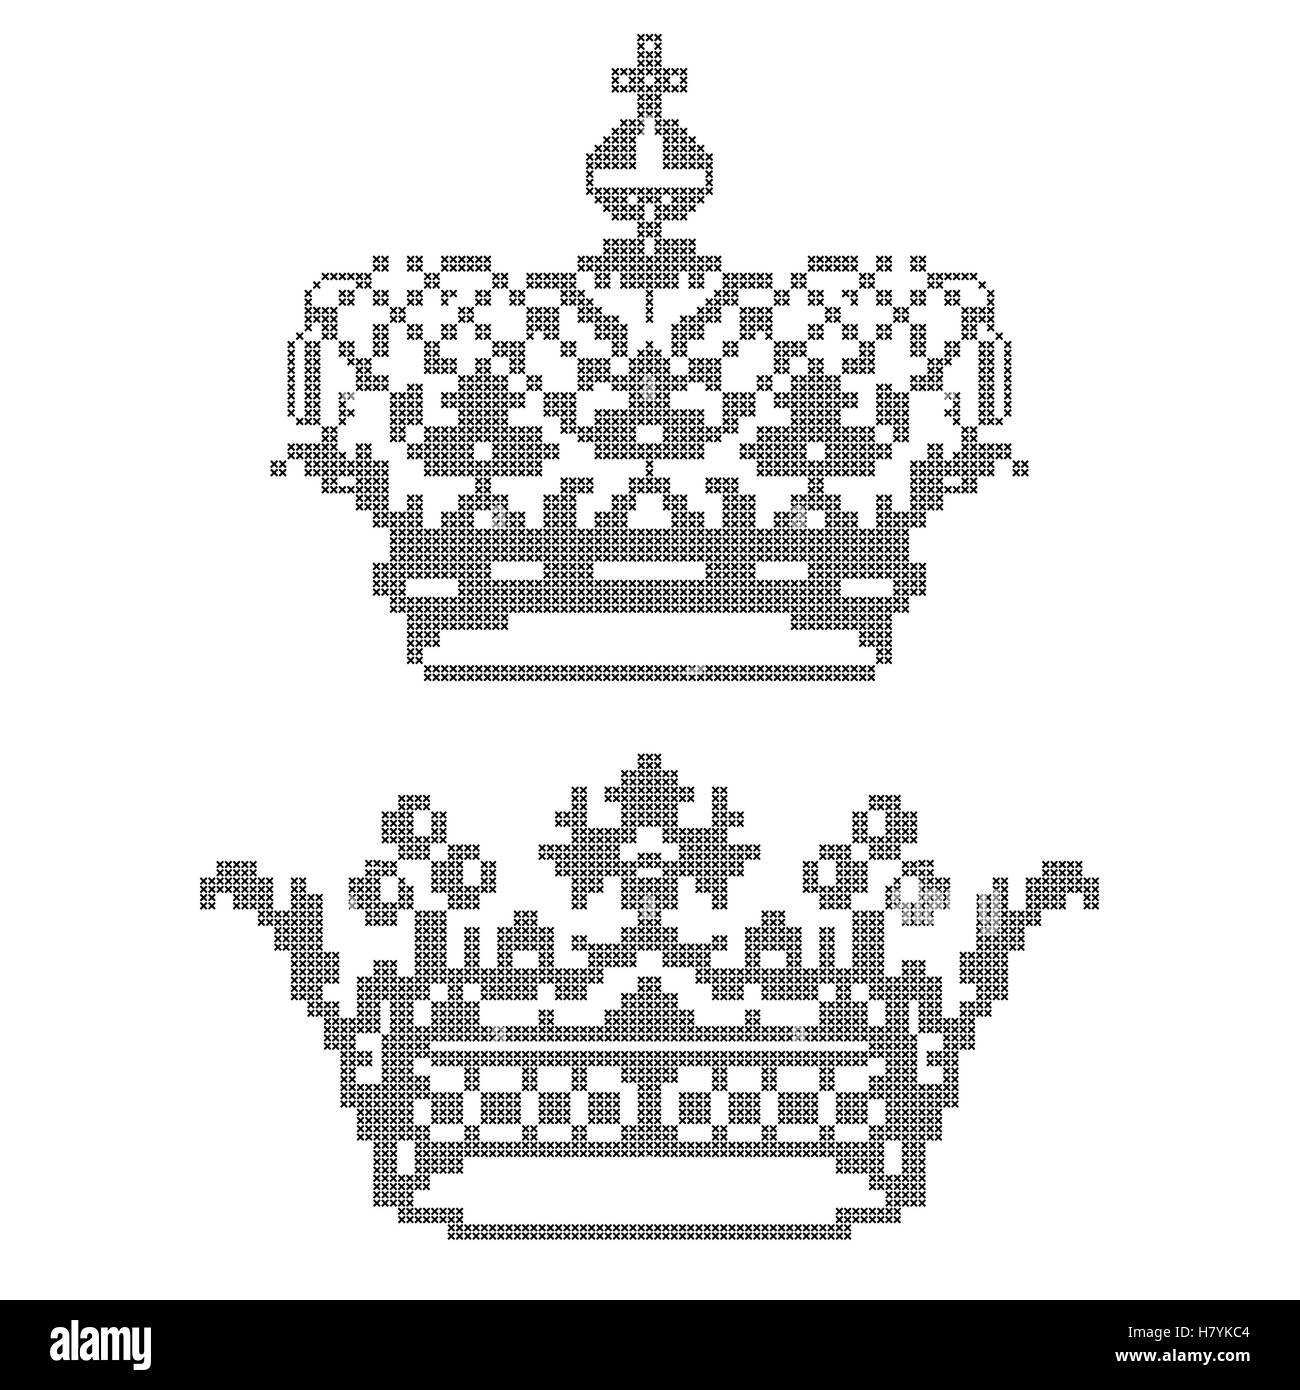 Design elements for cross-stitch embroidery. Crowns. Vector illustration. - Stock Vector